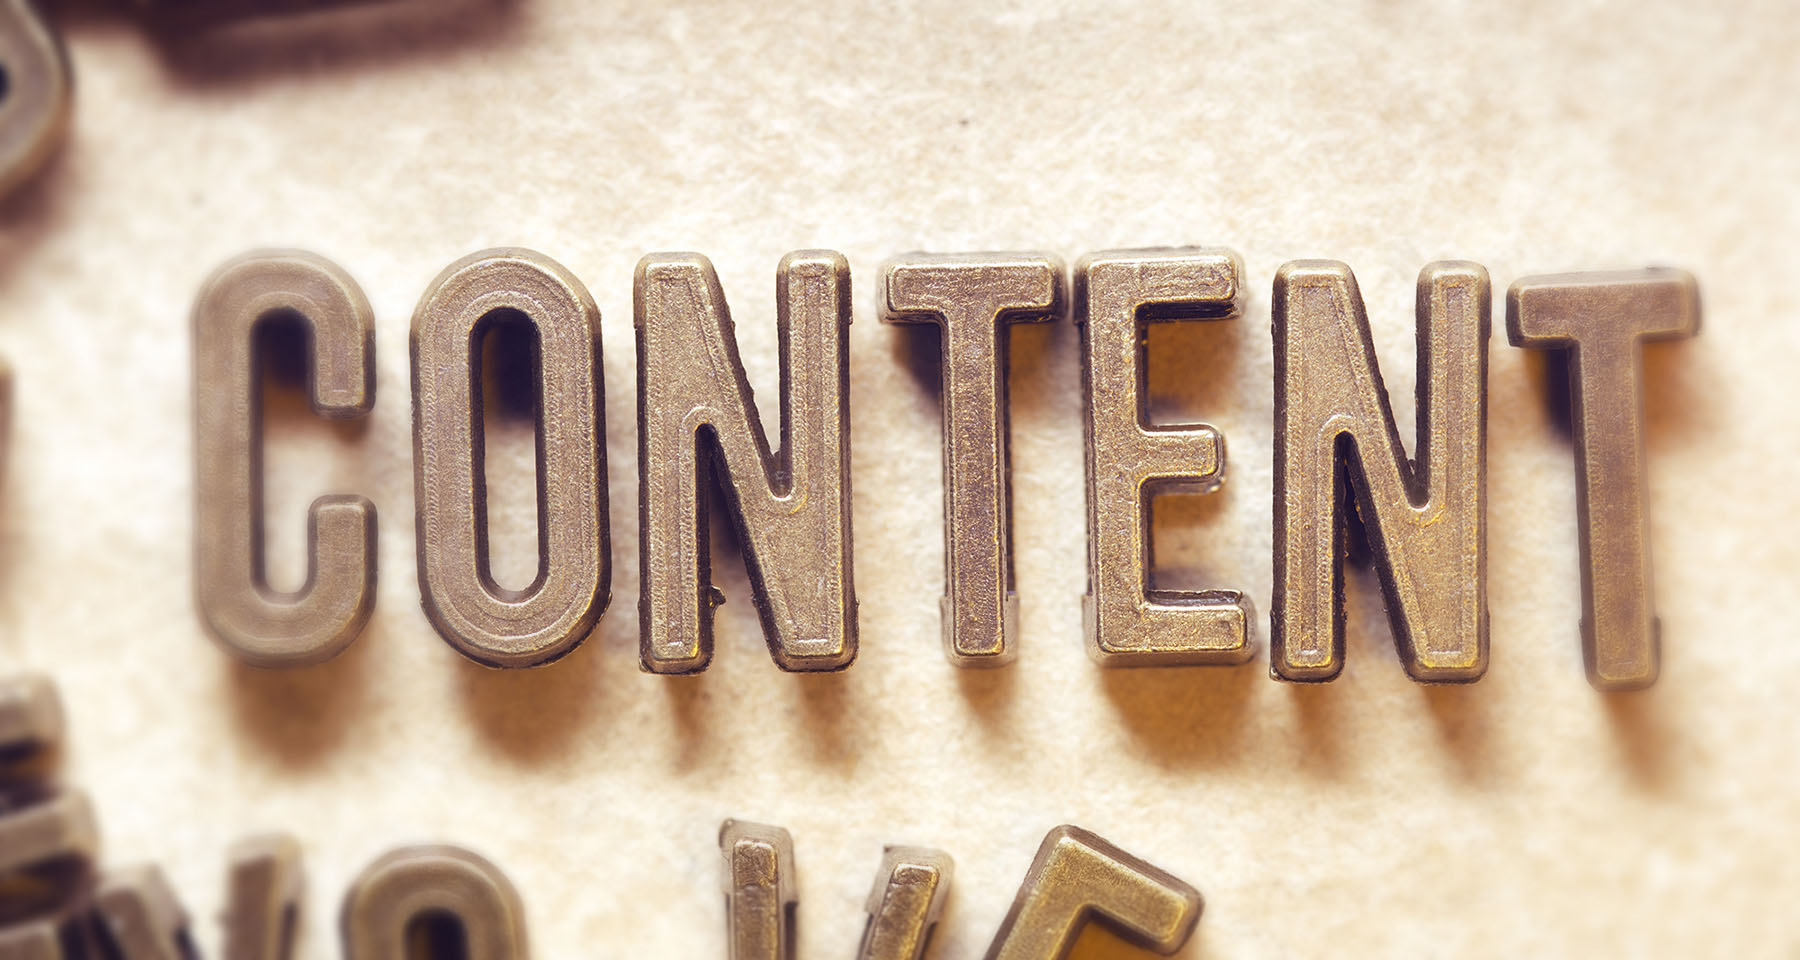 Quality content strategy is key to digital success